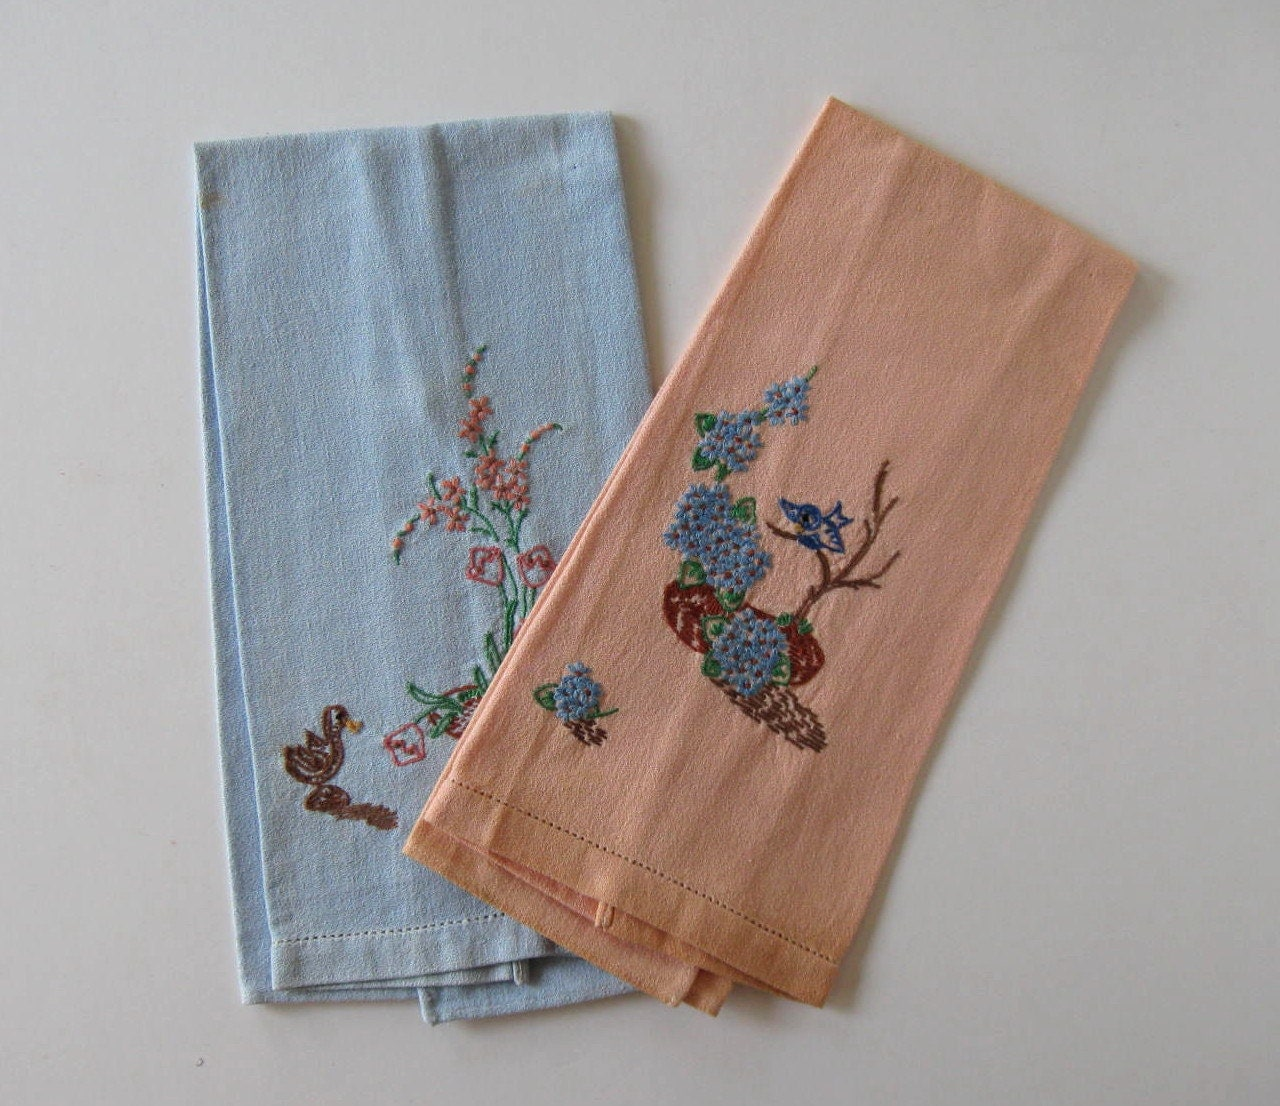 SALE 2 Antique Floral Embroidered Dish Towels Home And